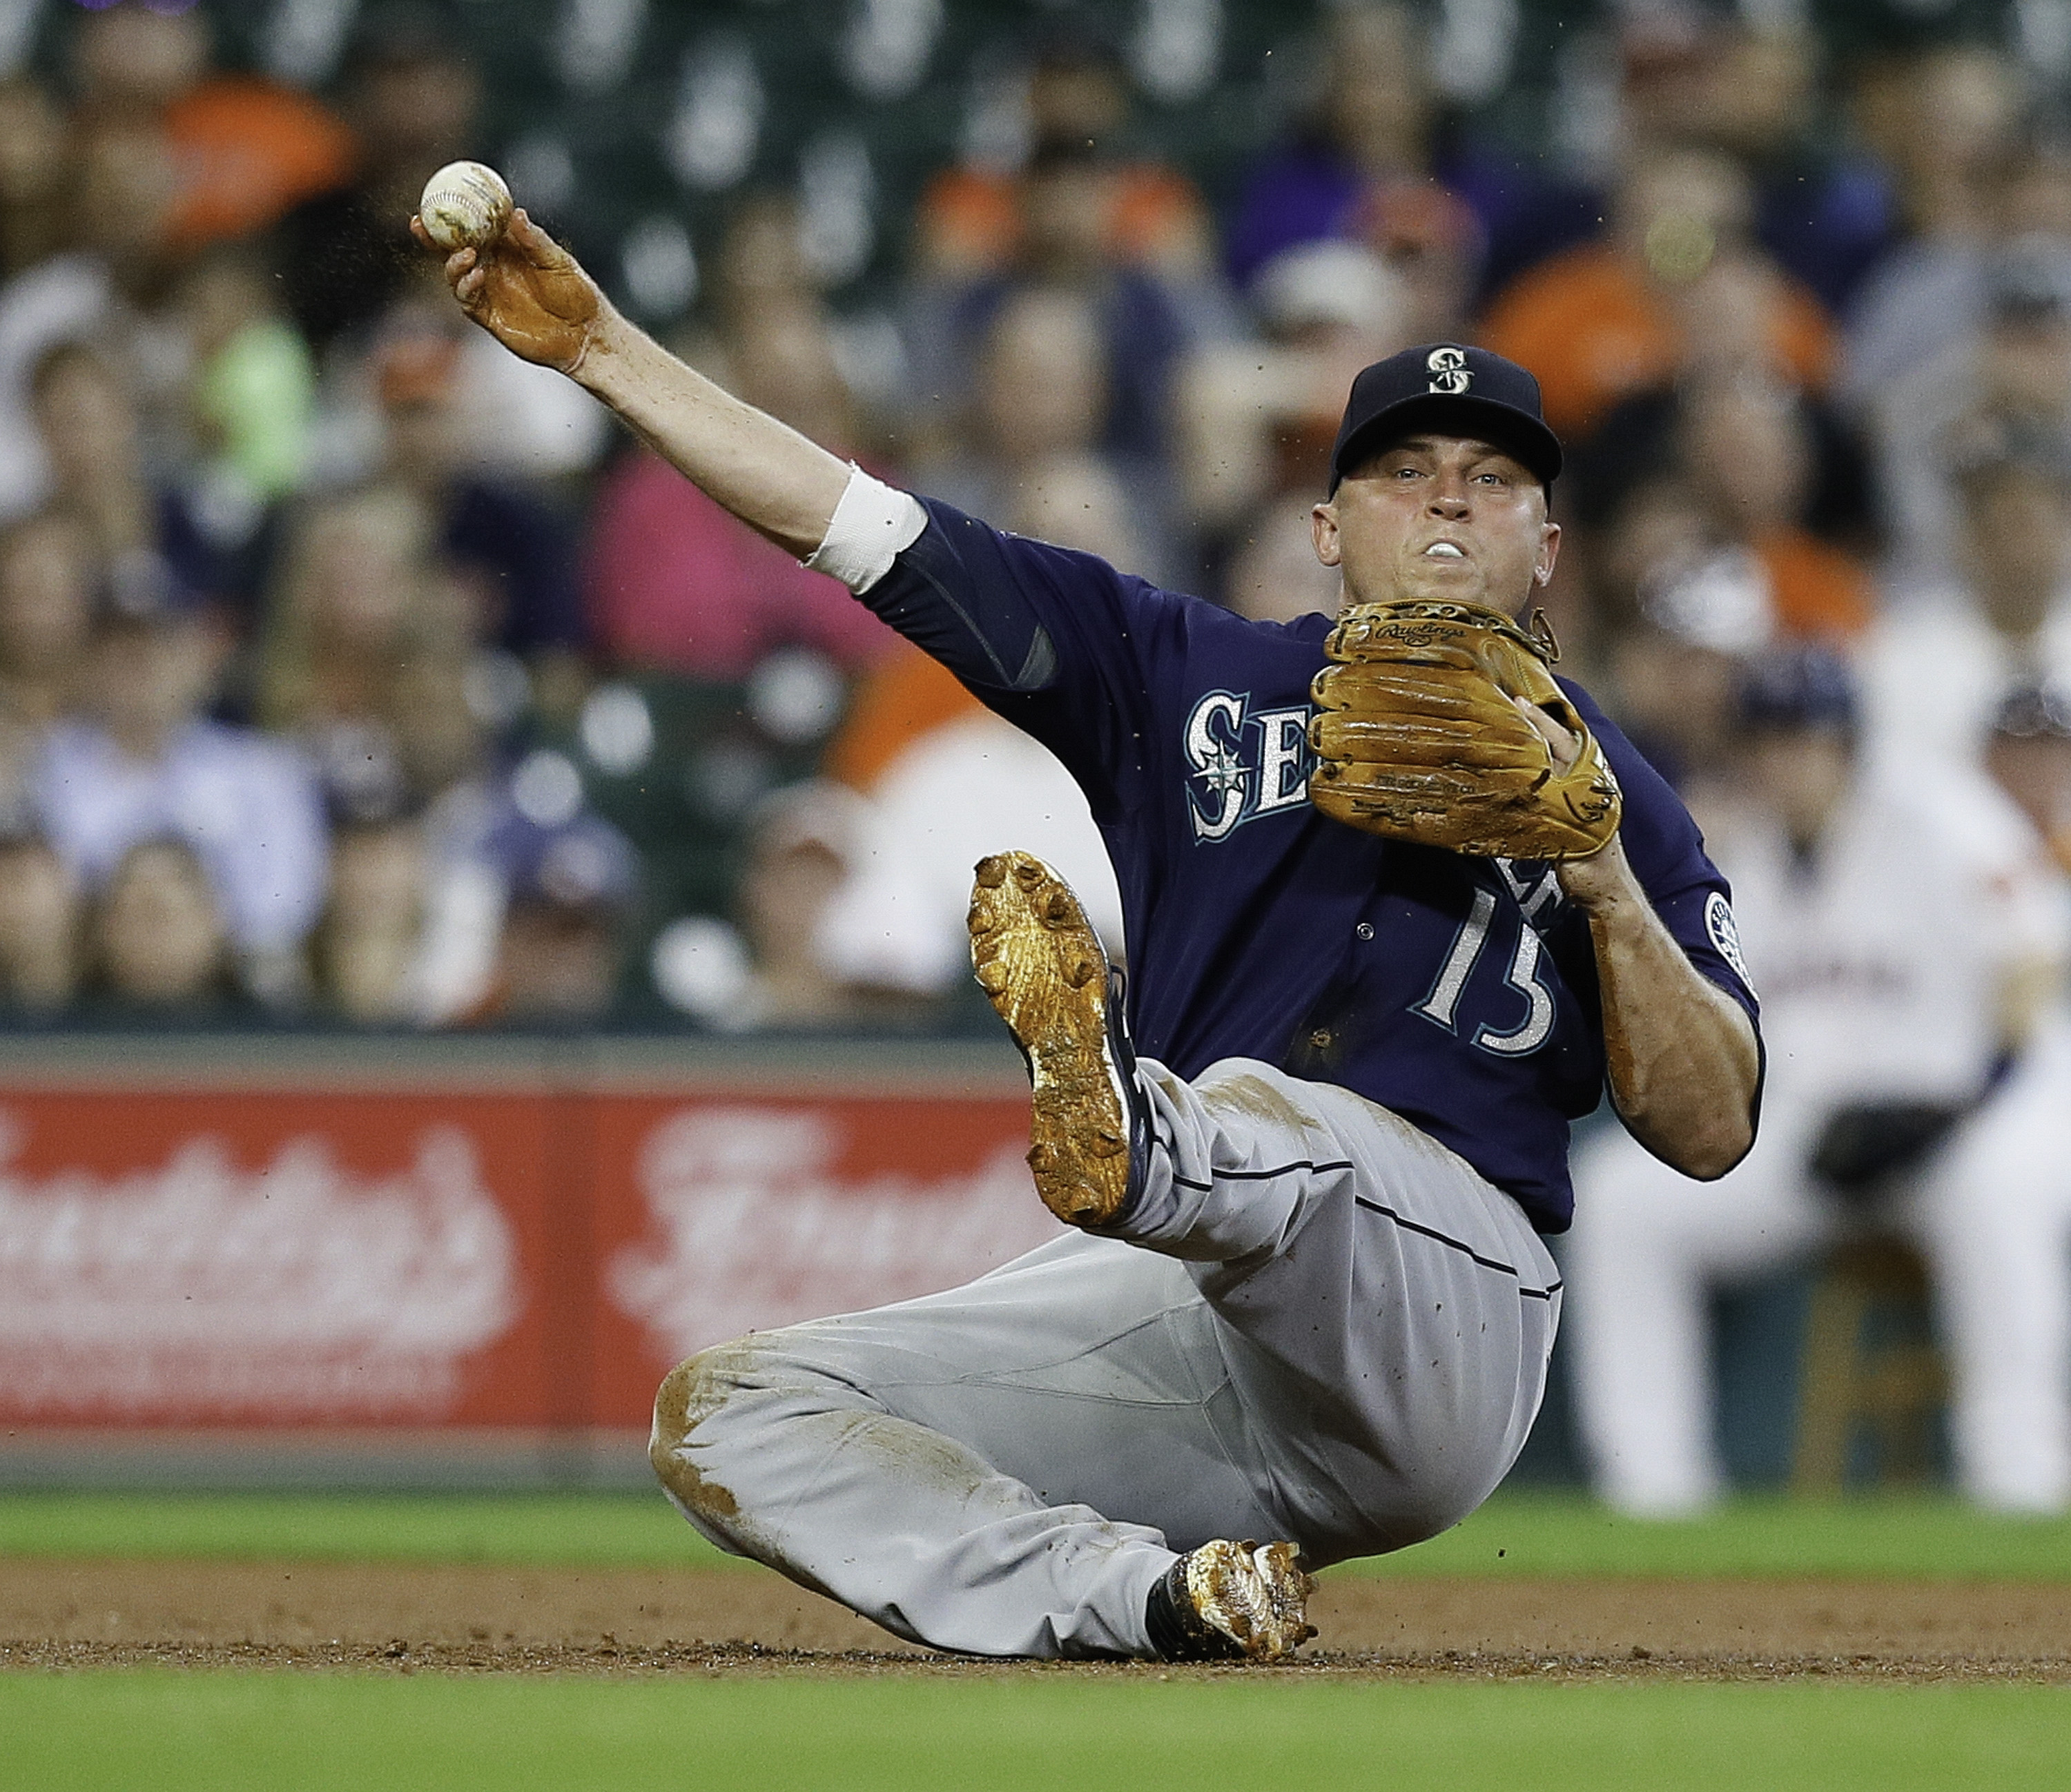 818966430-seattle-mariners-v-houston-astros.jpg